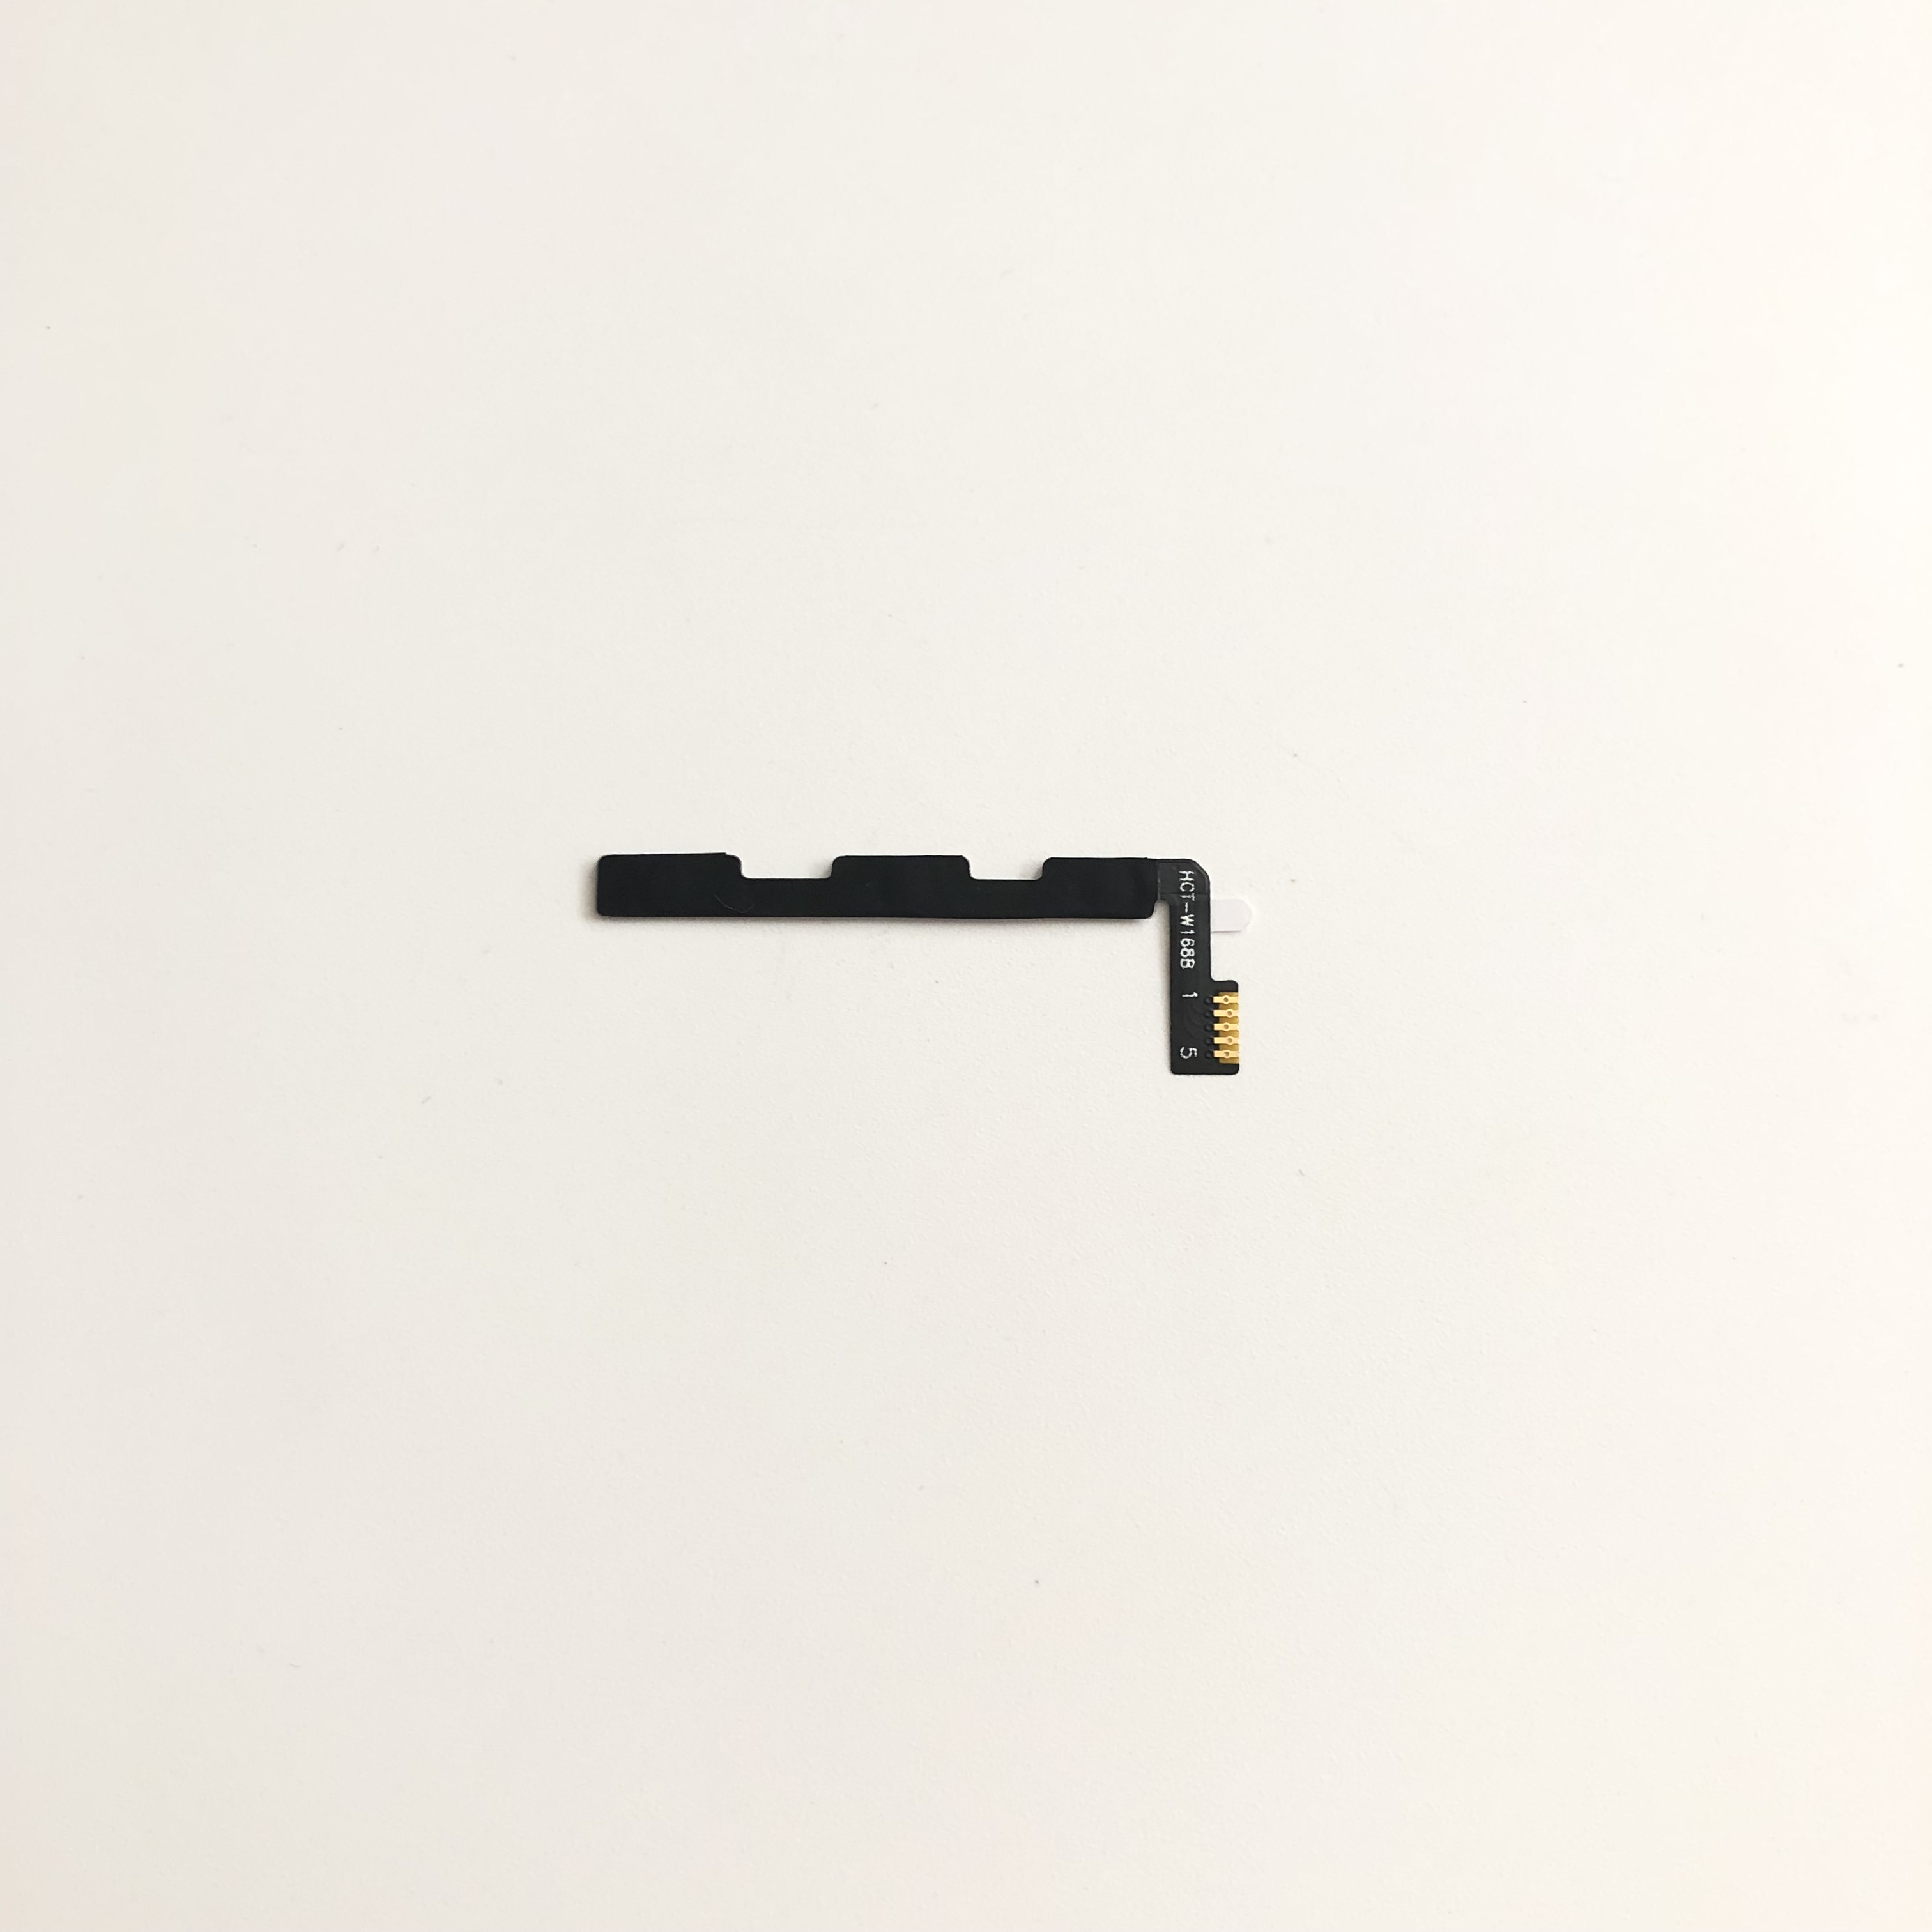 Blackview A60 New Power On Off Button+Volume Key Flex Cable FPC For Blackview A60 MT6580A Quad 6.1 inch 1280*600 Smartphone